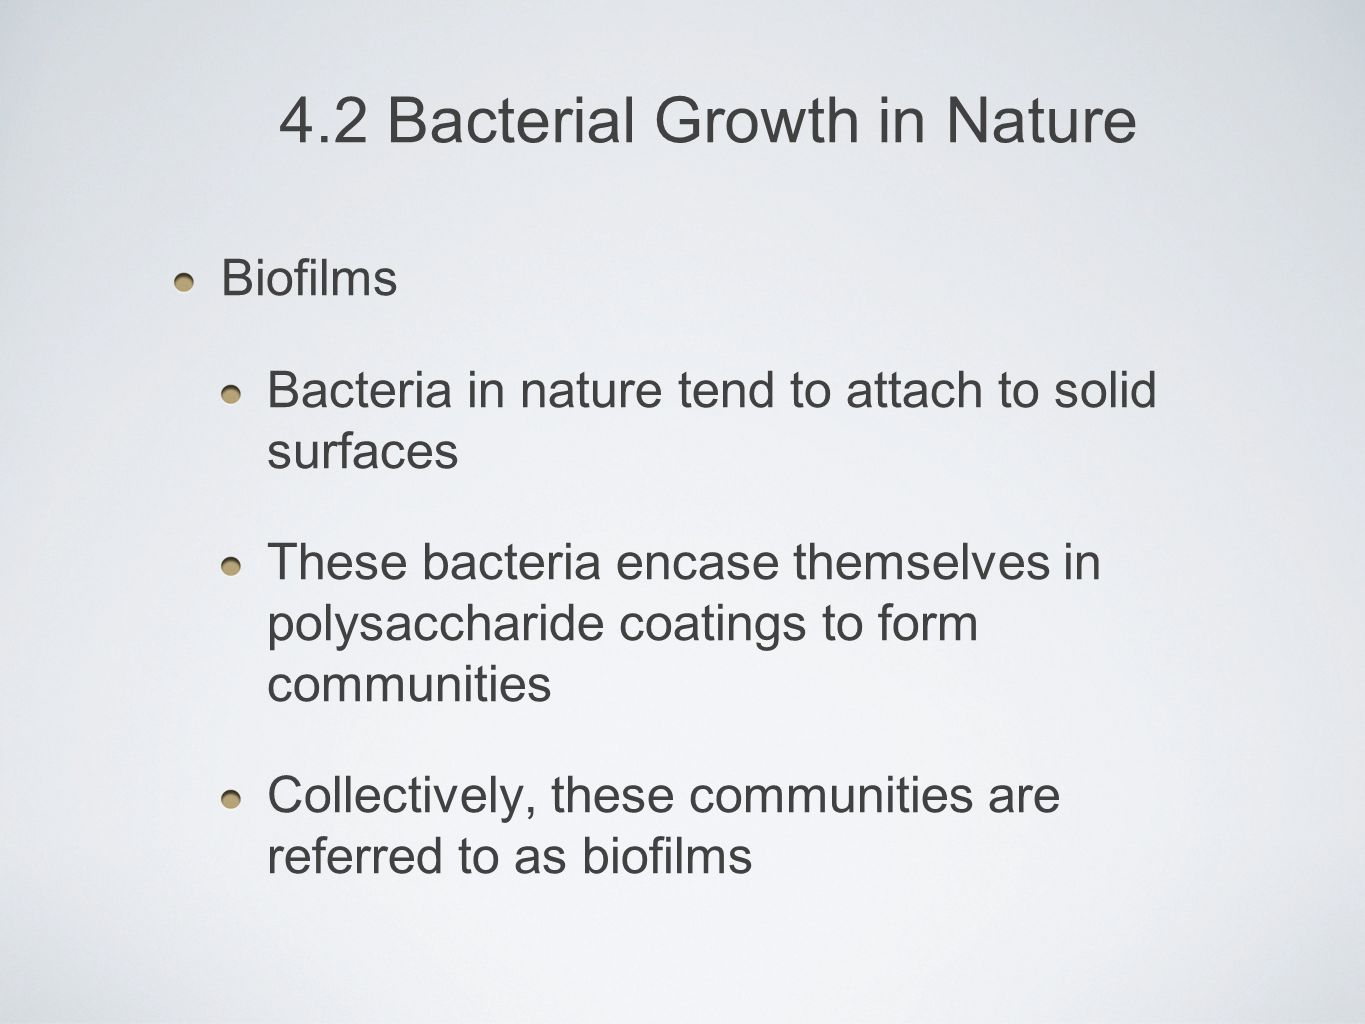 4.2 Bacterial Growth in Nature